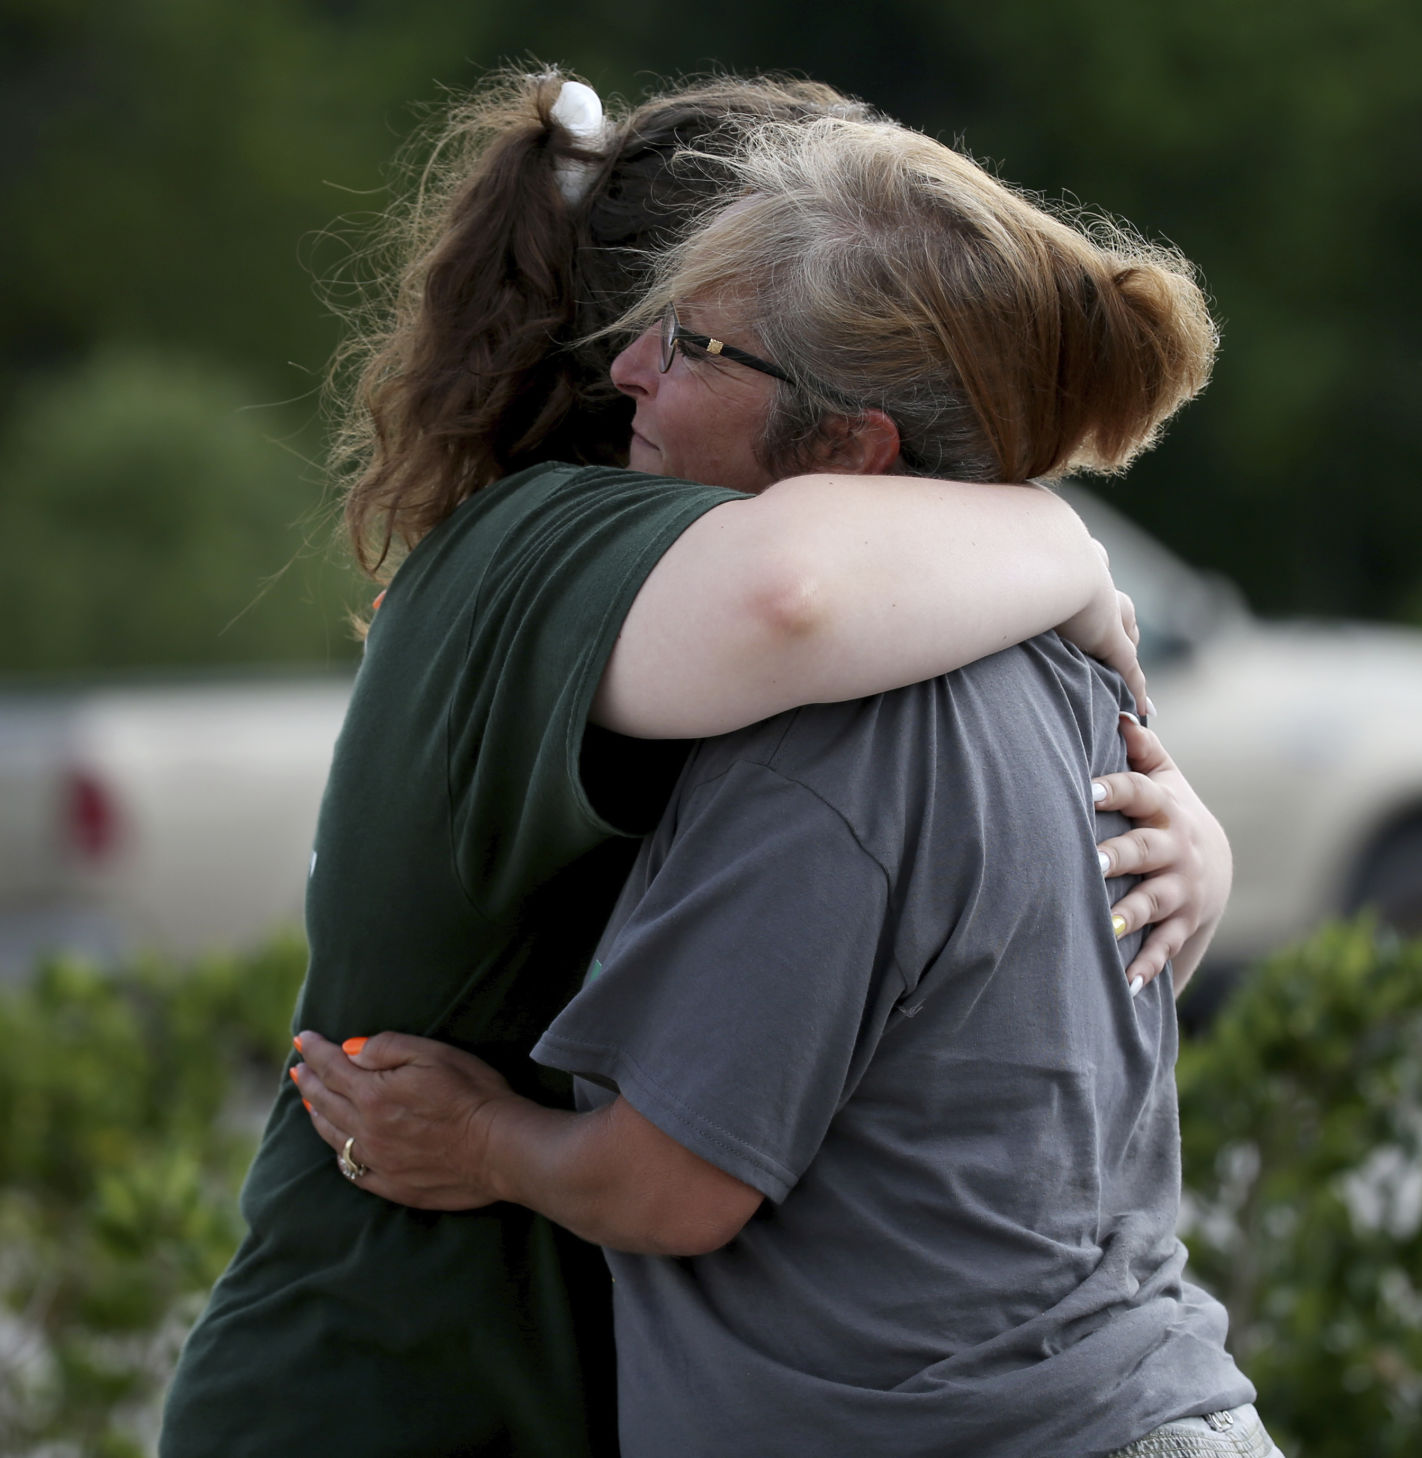 Santa Fe High School shooting in Texas